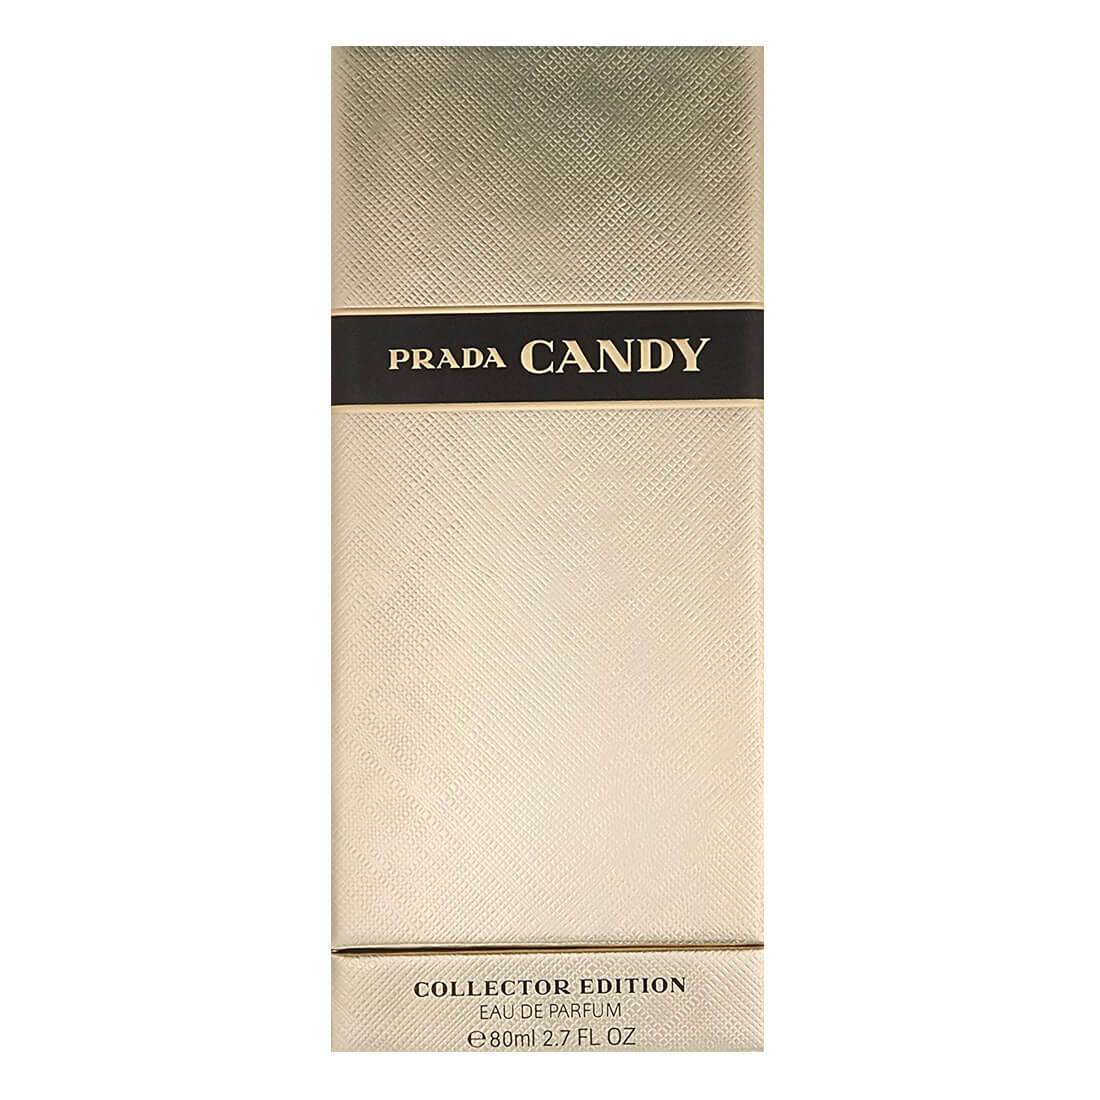 Prada Candy Collectors Edition Eau De Perfume - 80ml